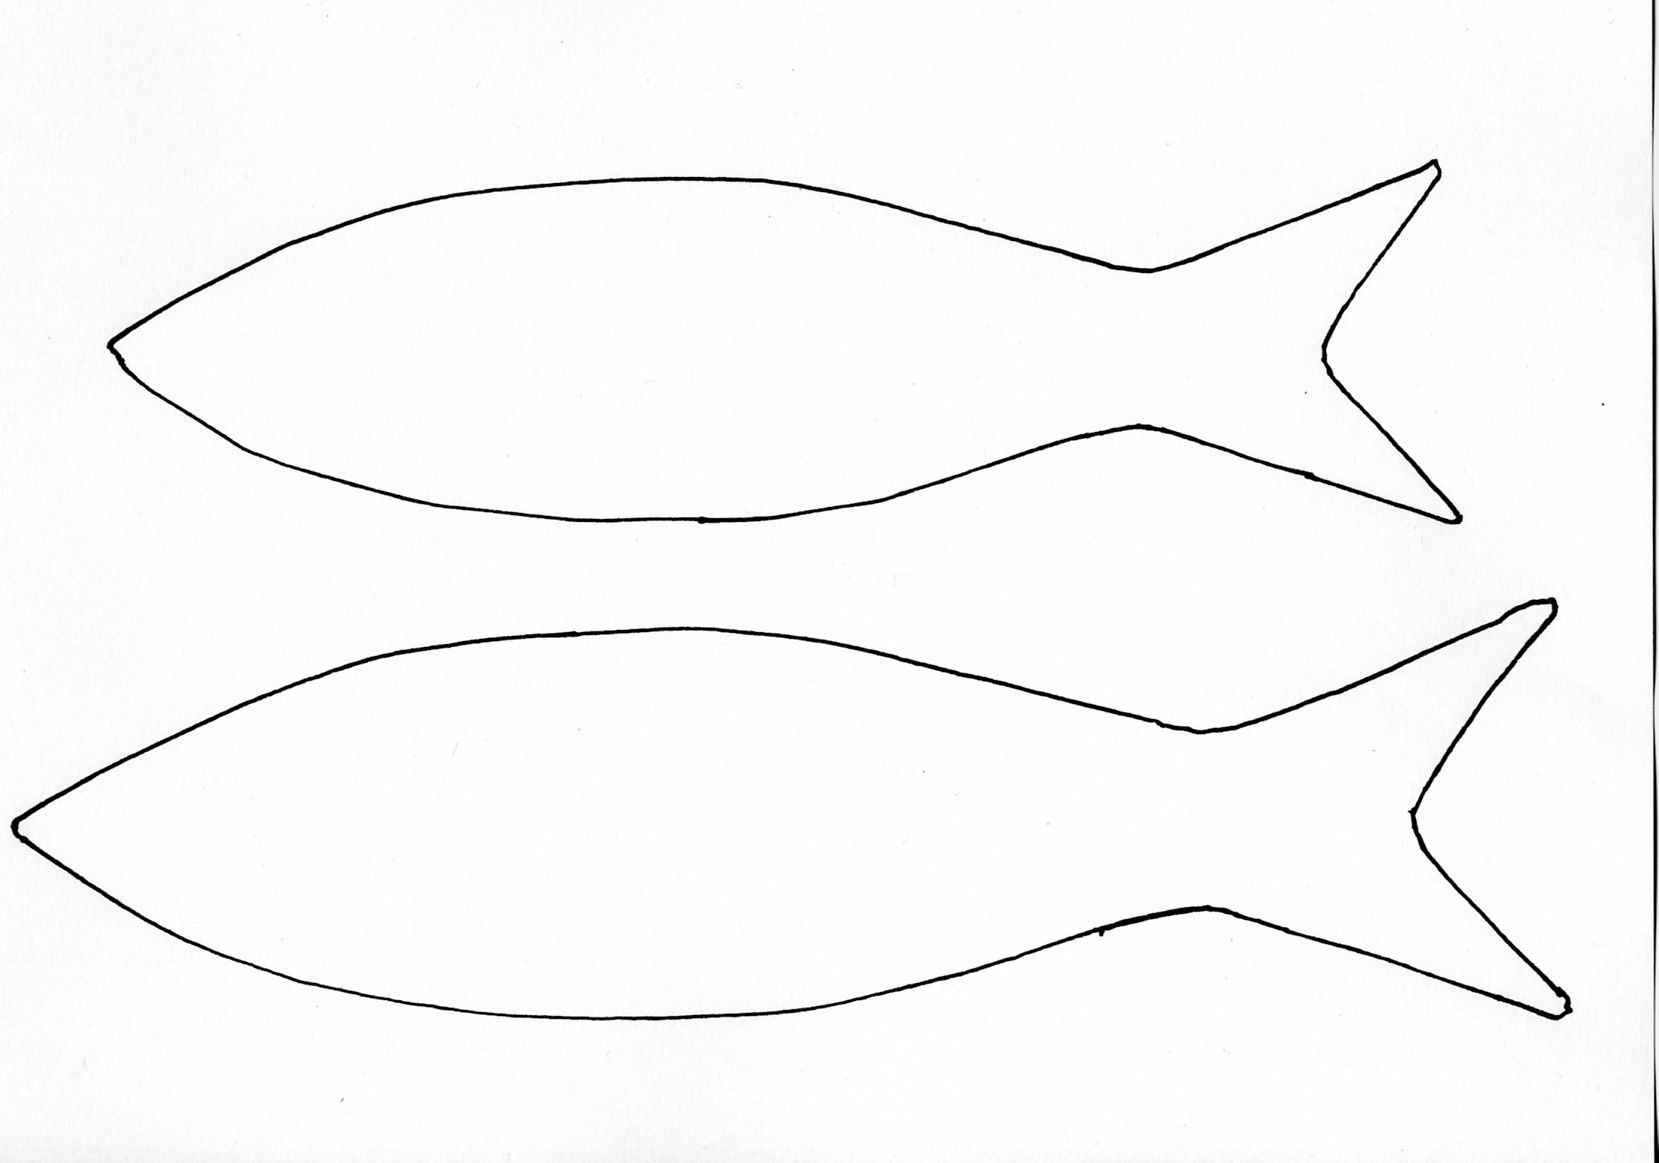 Fish Cutout Template | Fish Template Others Templates That Are - Free Printable Fish Stencils